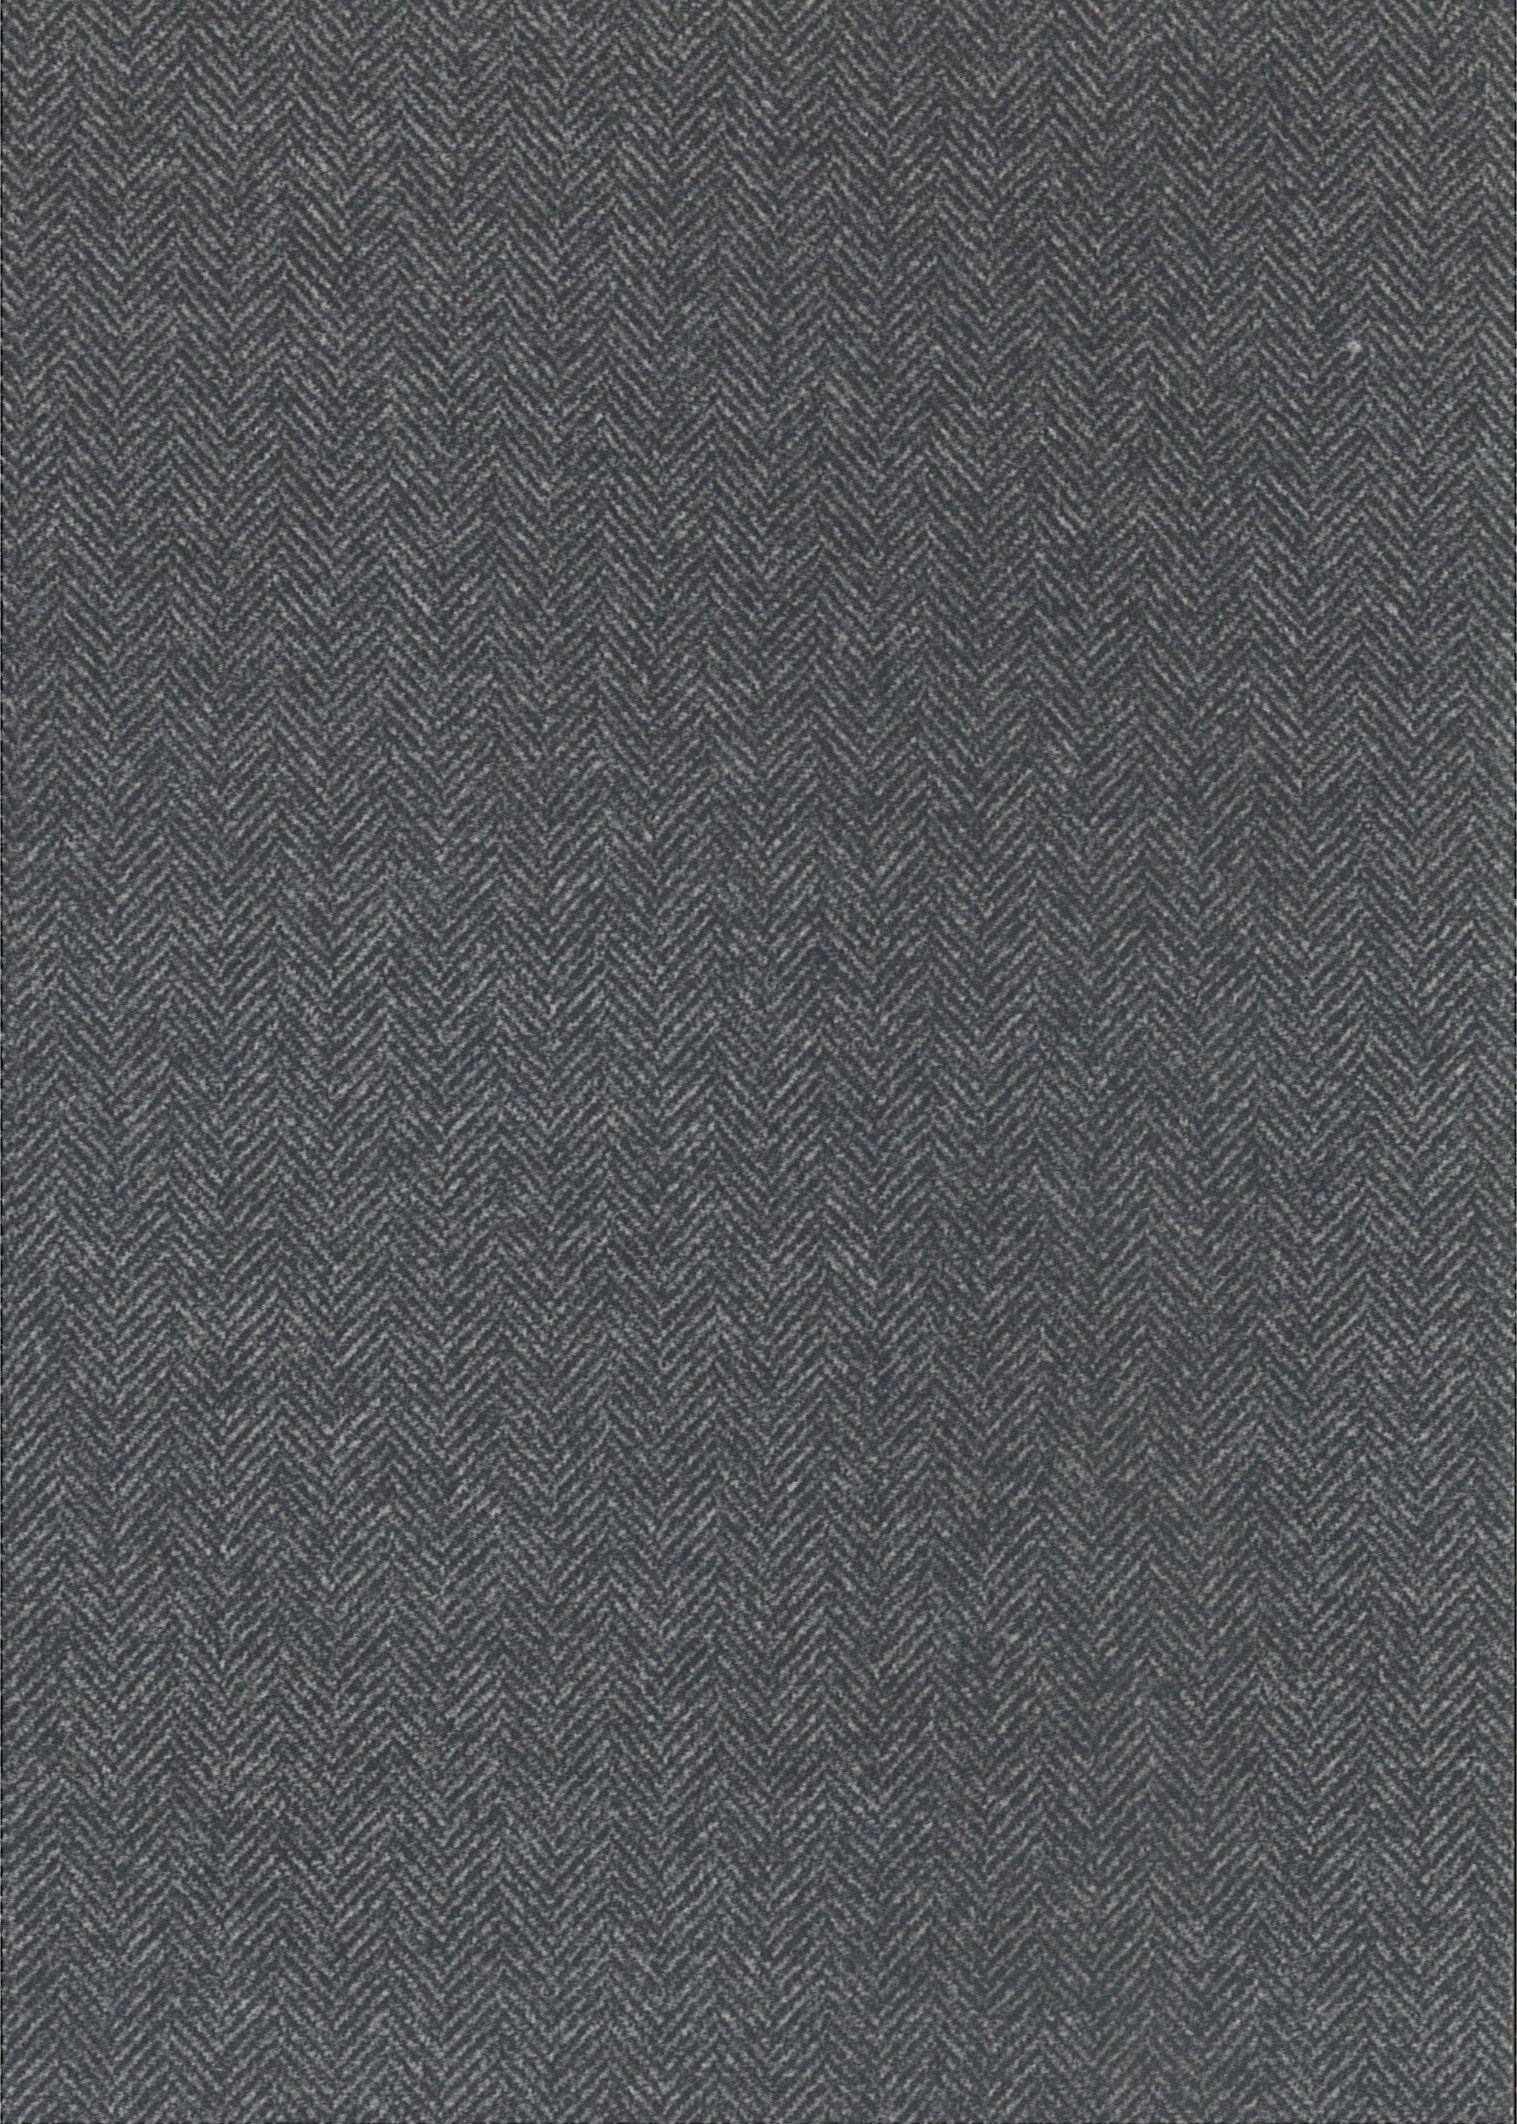 BAL 3411 W - Herringbone Slate Grey High Pressure Laminate